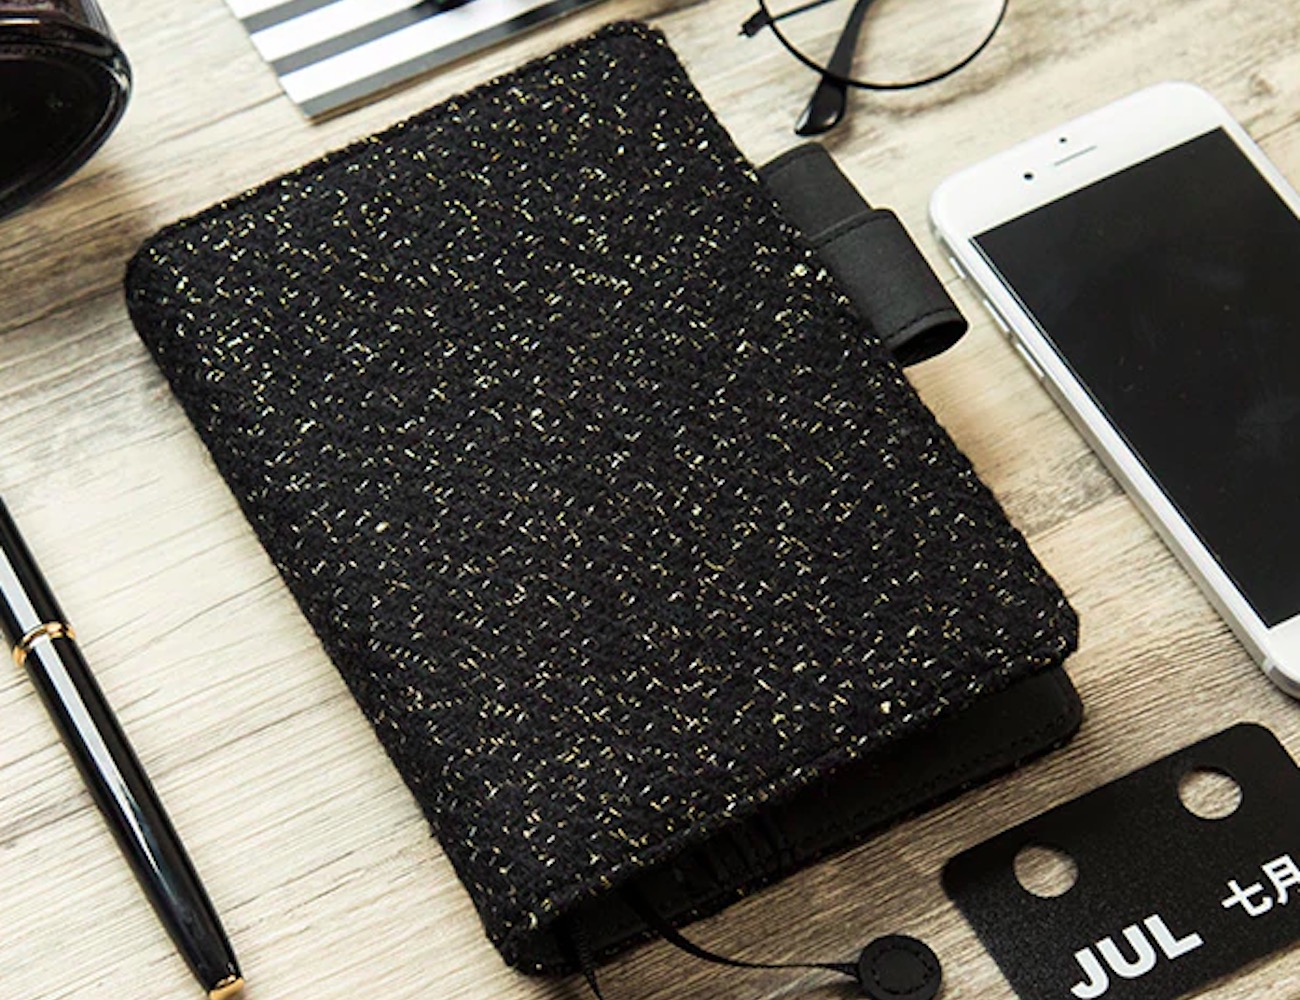 Black Wool Hardcover Notebook Cover offers a fresh look for your ideas